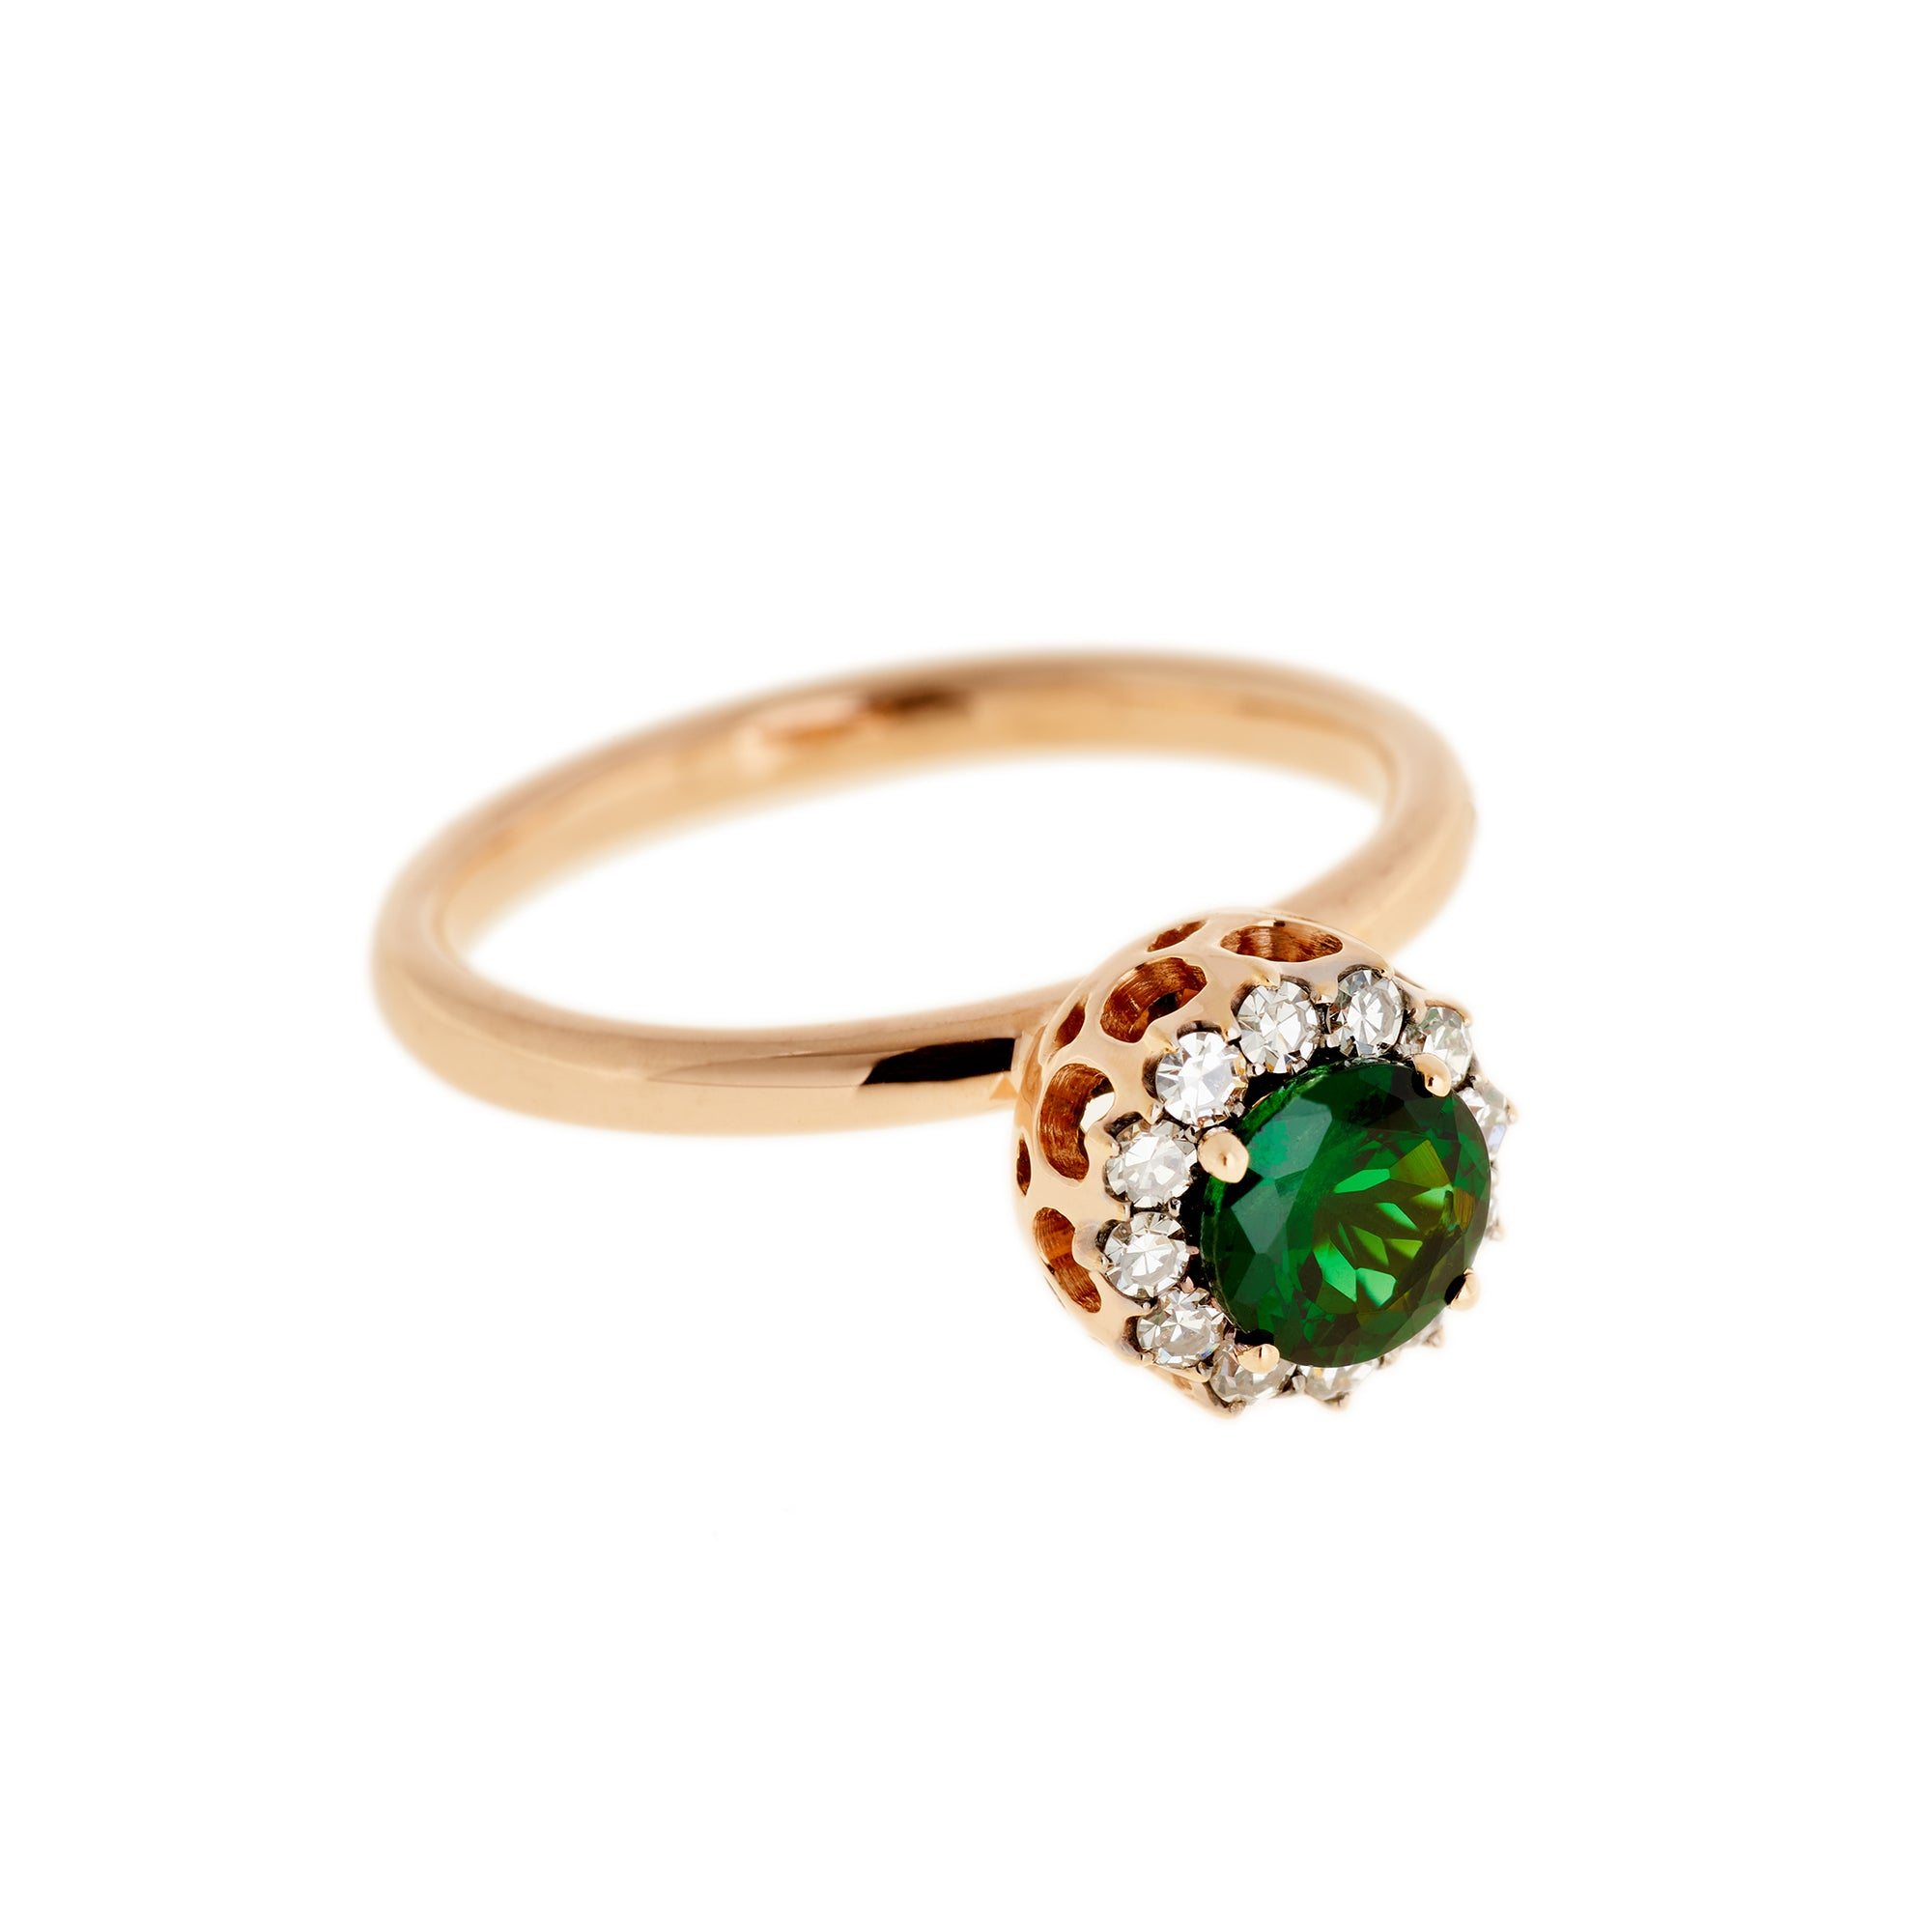 Tsavorite Ring by Selim Mouzannar for Broken English Jewelry